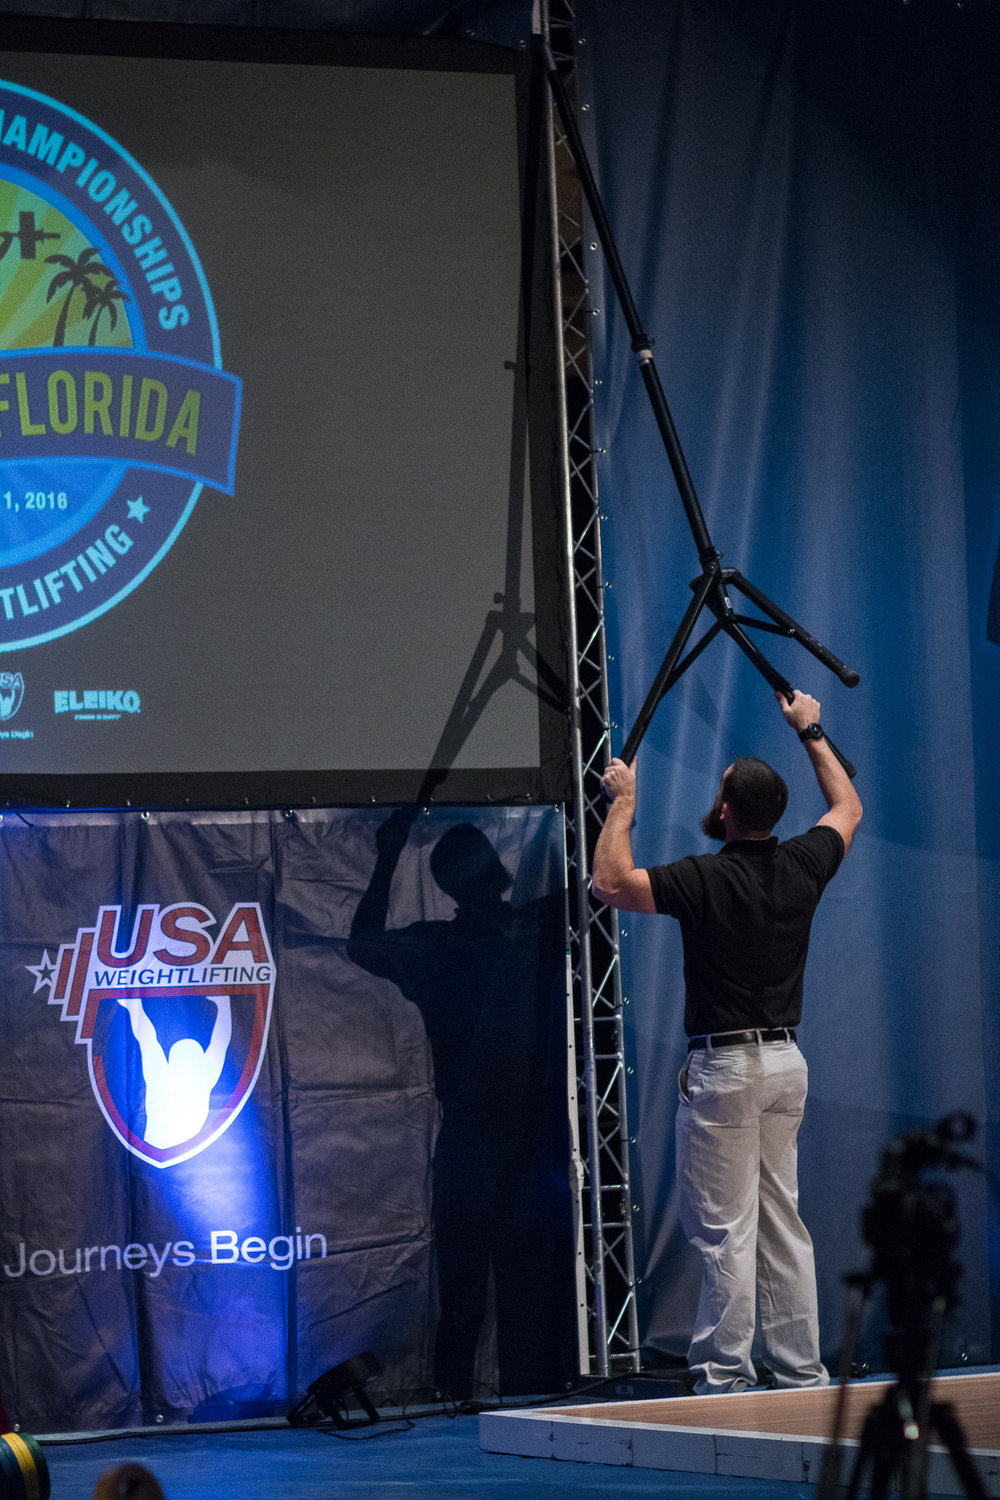 Behind-the-scence-American-Open-2016-weightlifting (4 of 10).jpg